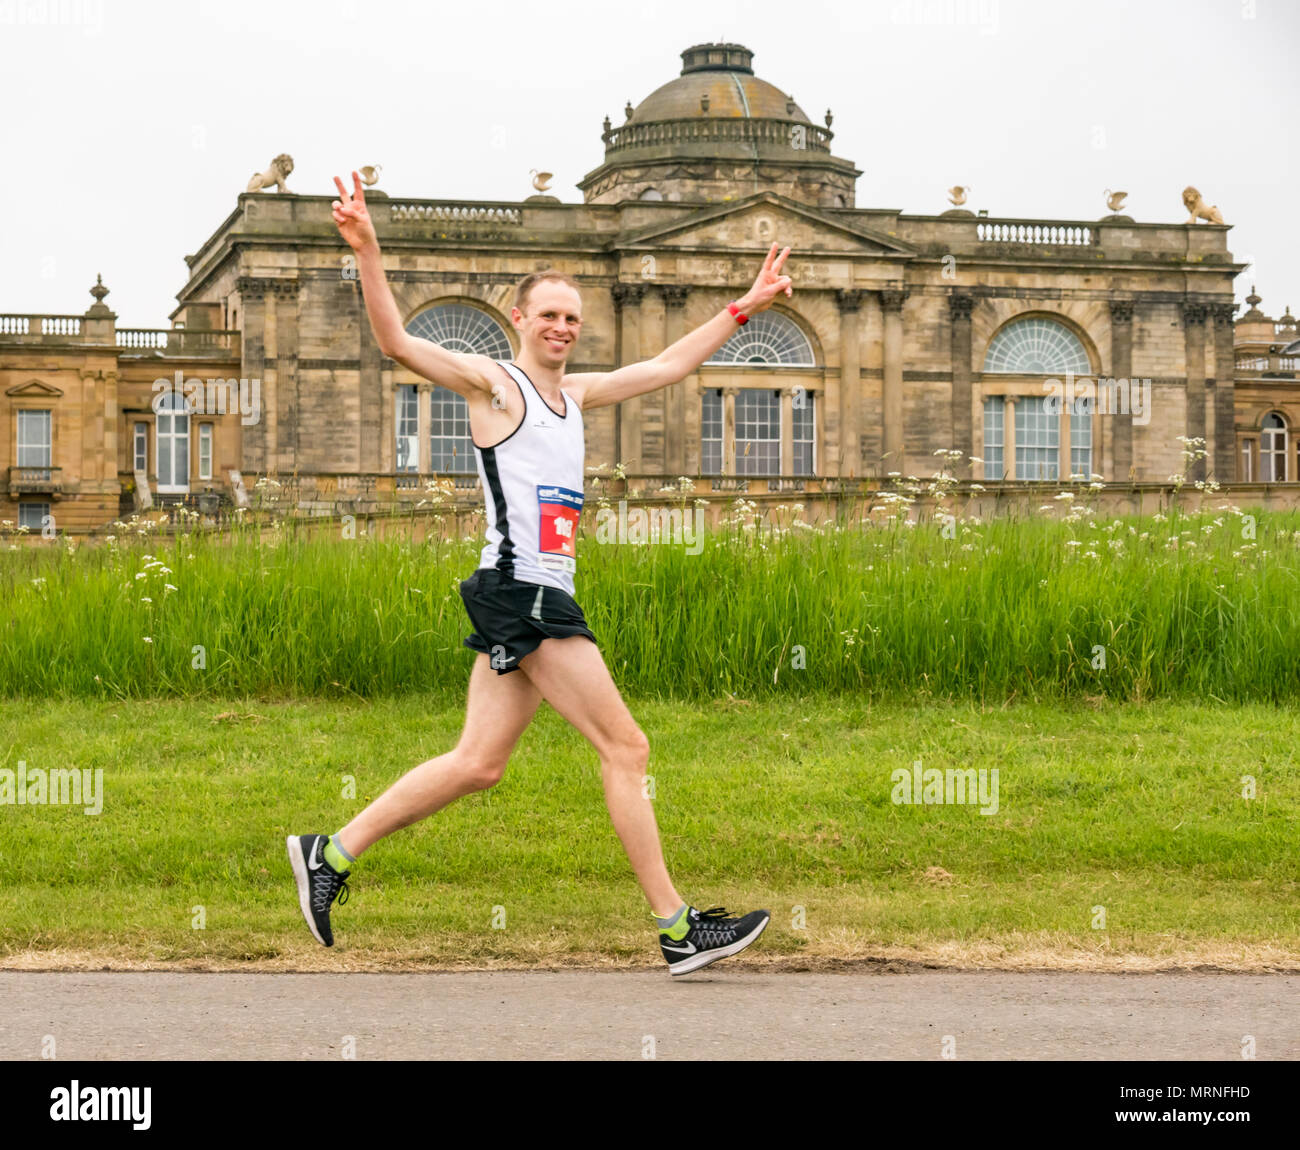 edinburgh-marathon-festival-26th-may-201